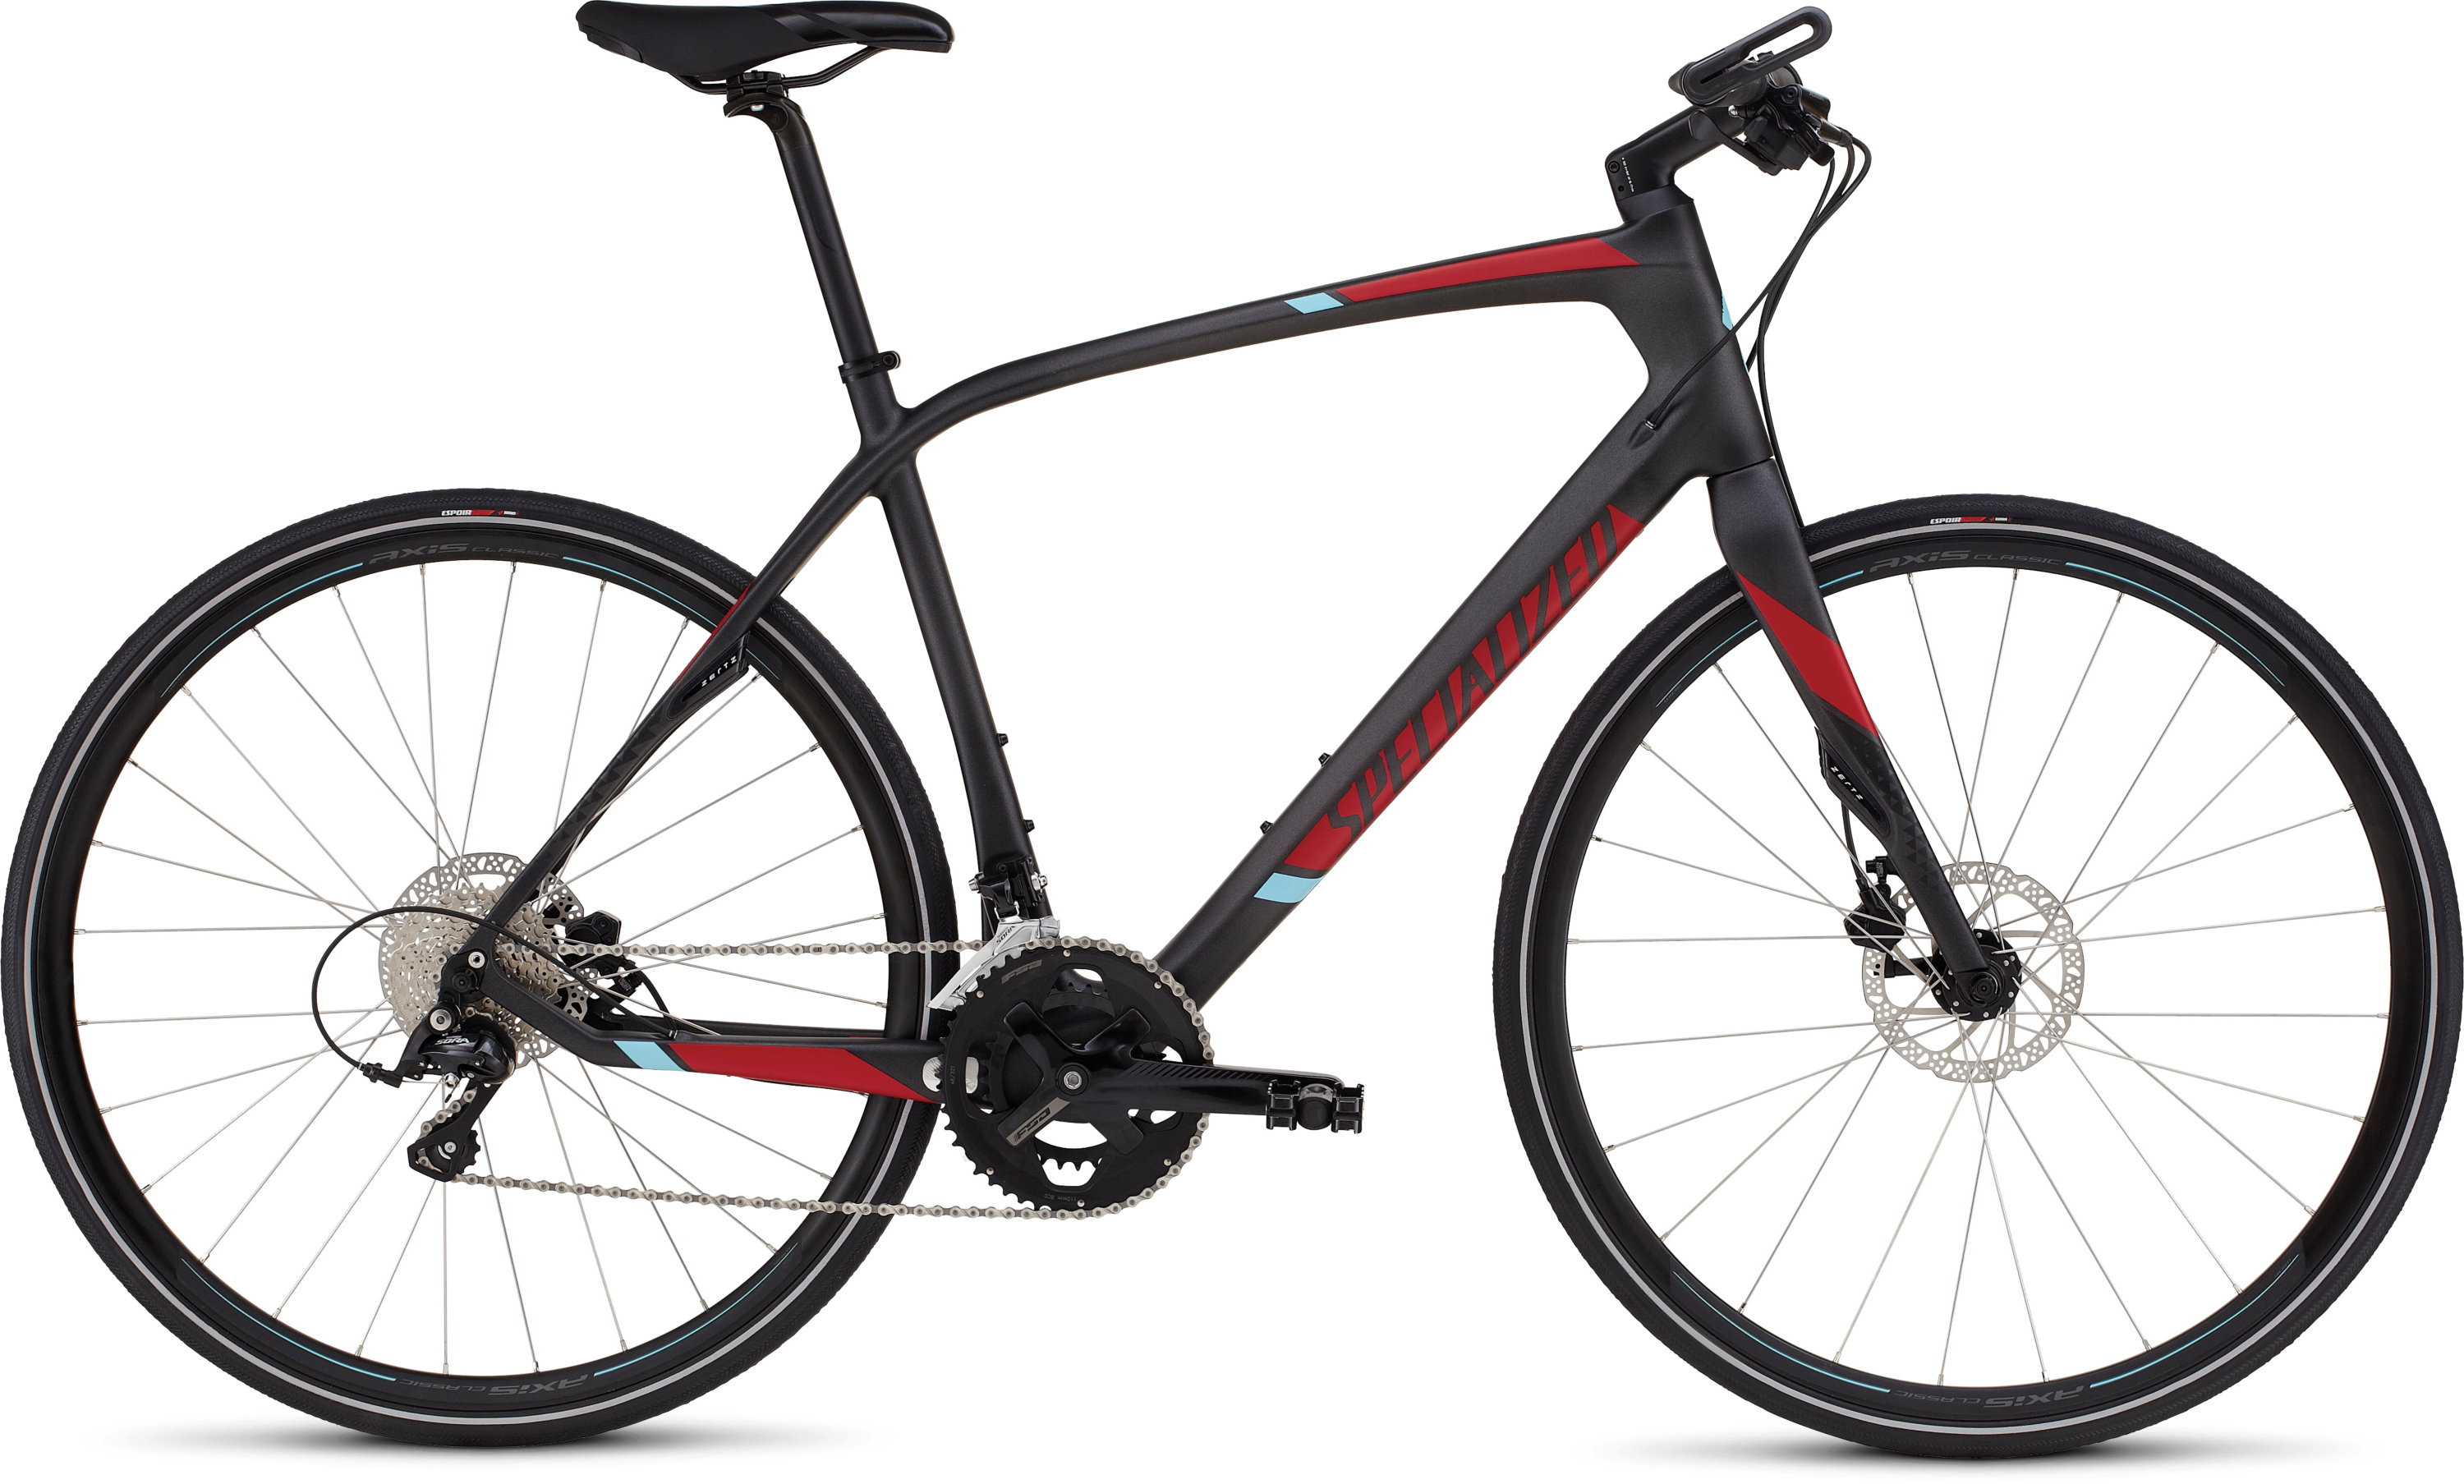 SPECIALIZED SIRRUS ELITE CARBON DISC SILCARBTNT/CNDYRED/LTBLU S - Bikedreams & Dustbikes